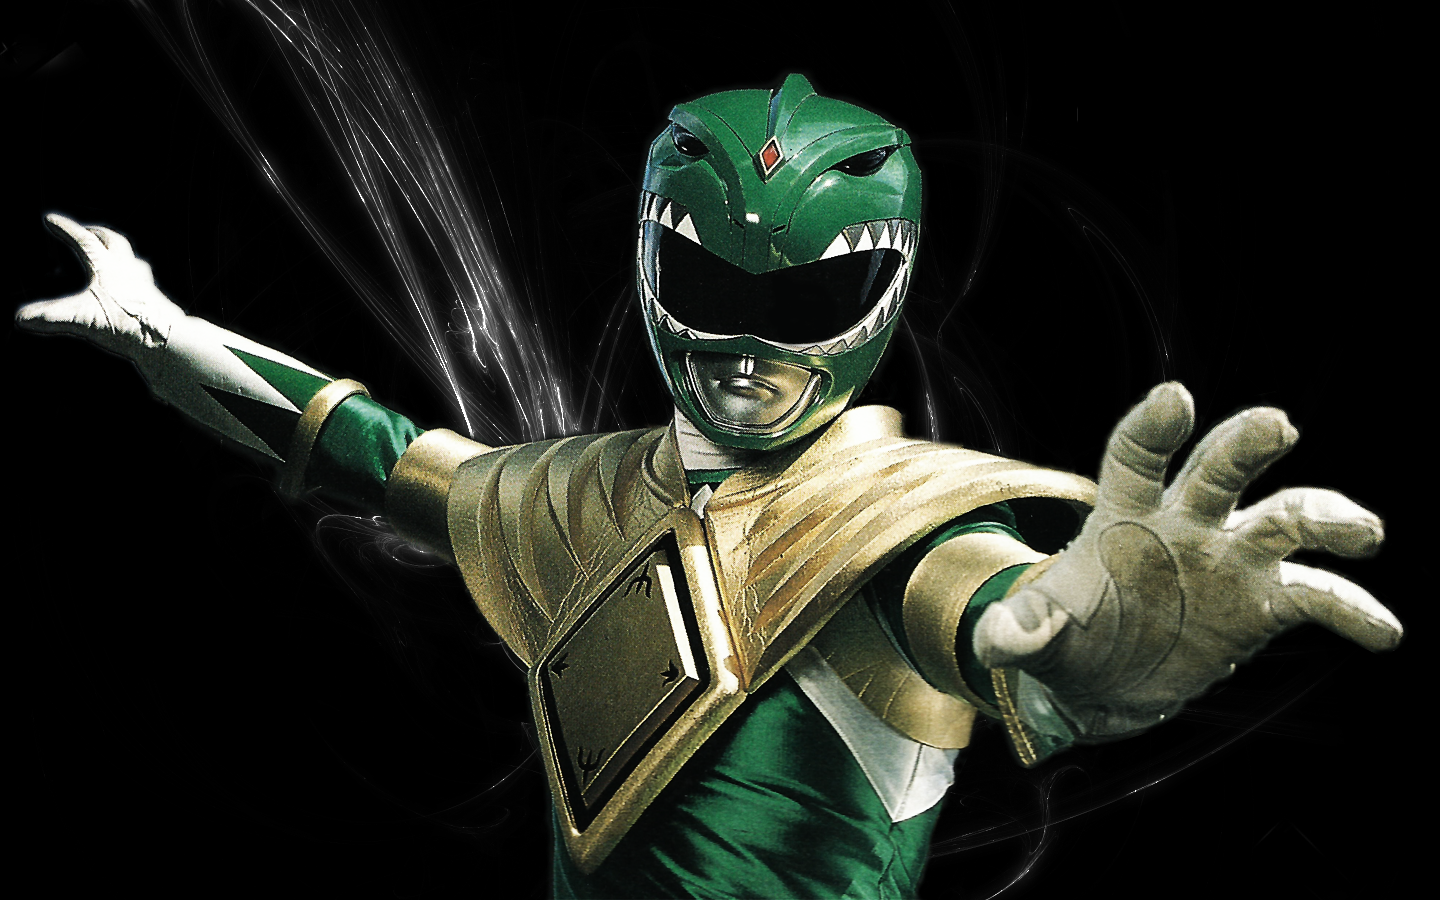 The Green Ranger's Power Shield